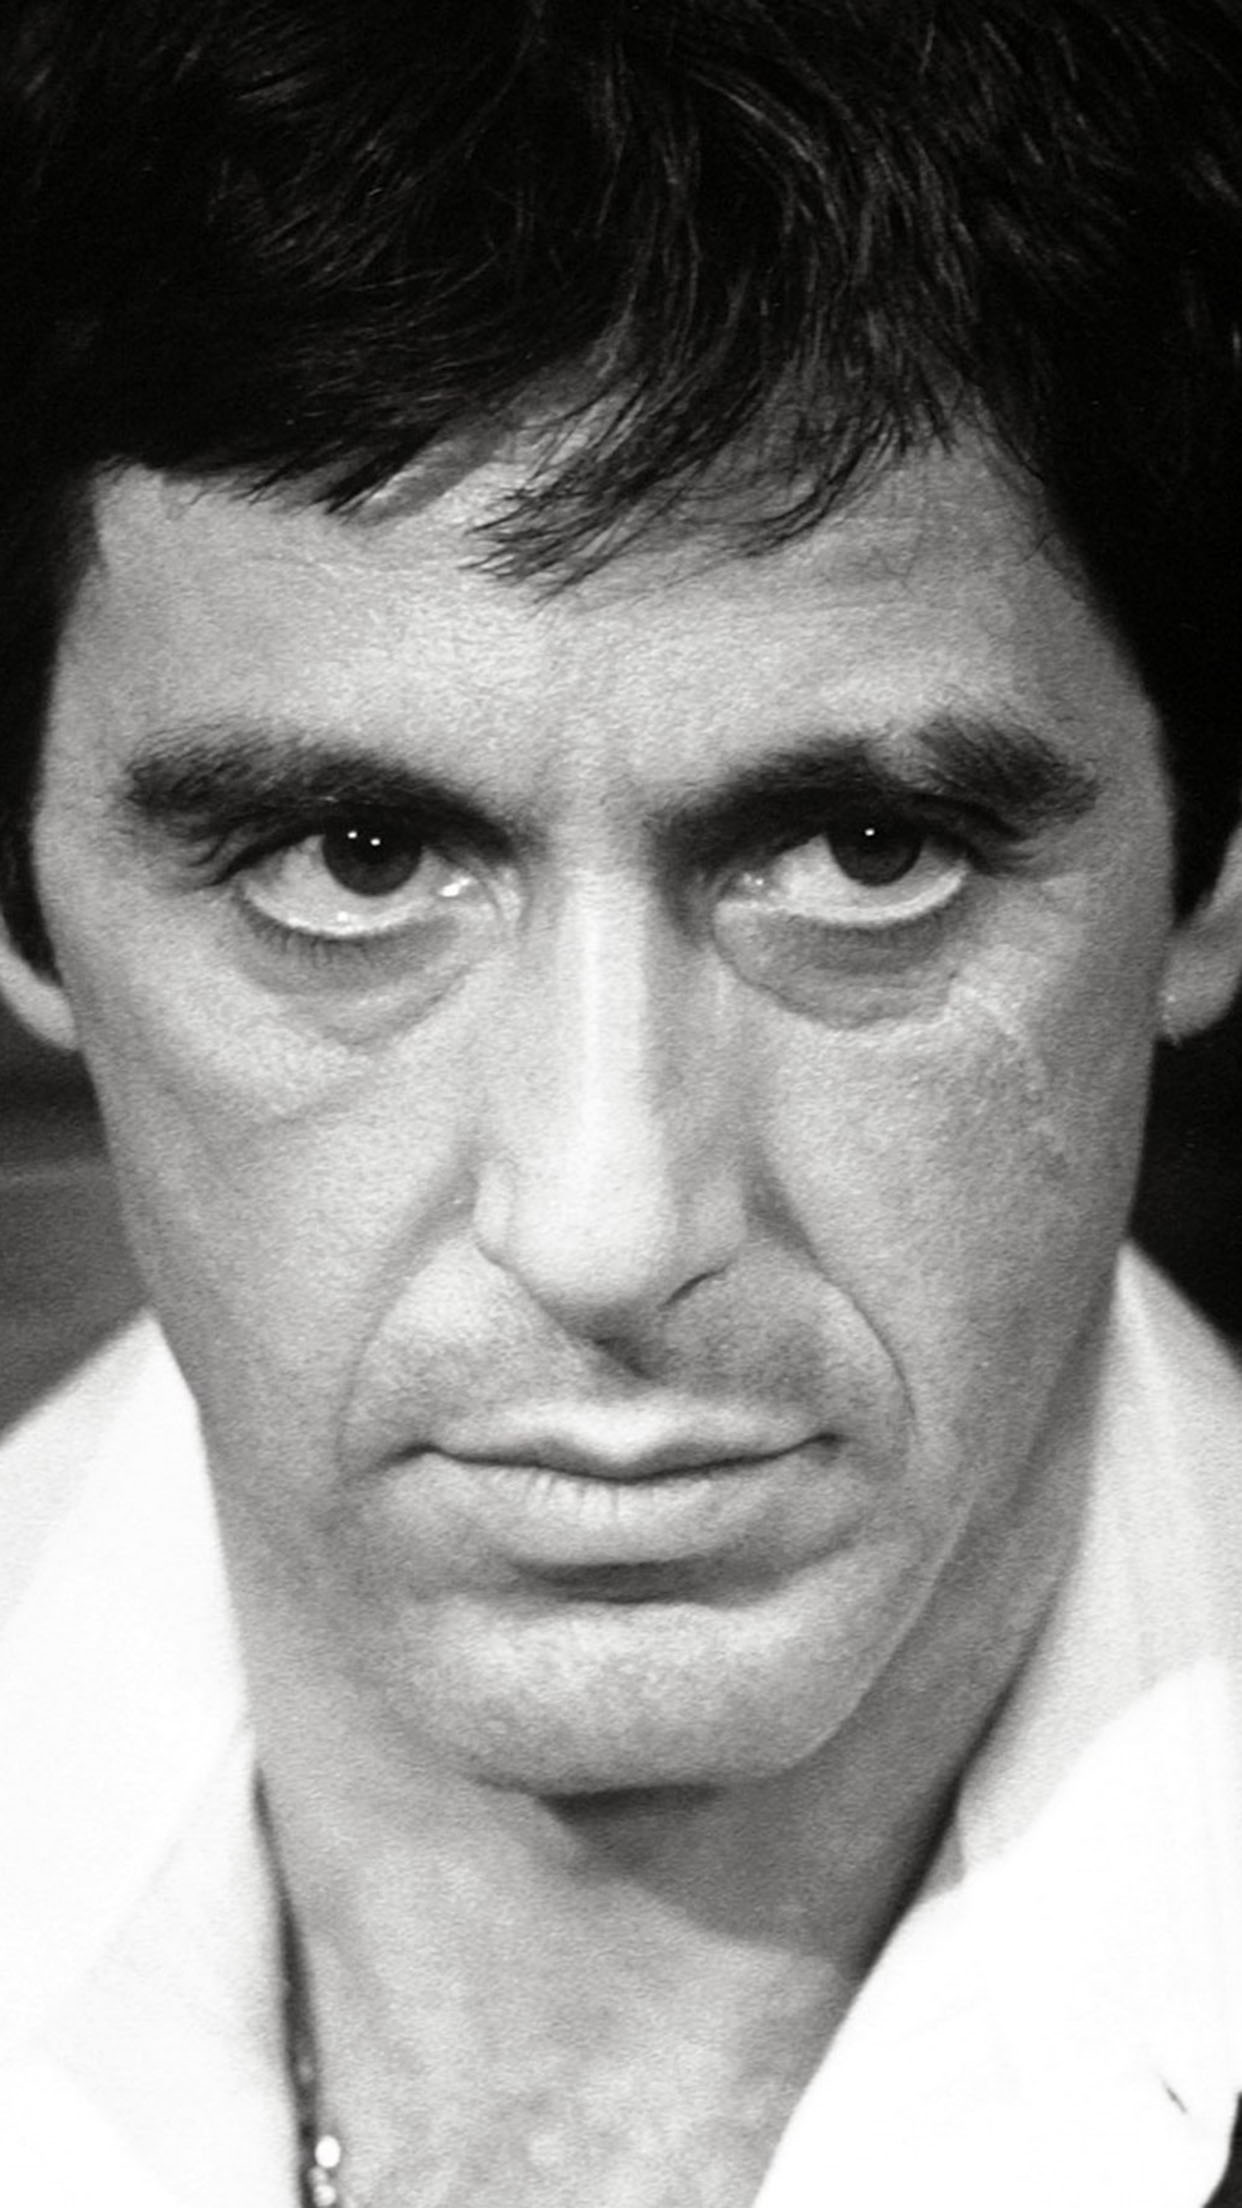 Scarface Al Pacino 3Wallpapers iPhone Parallax Scarface: Al Pacino